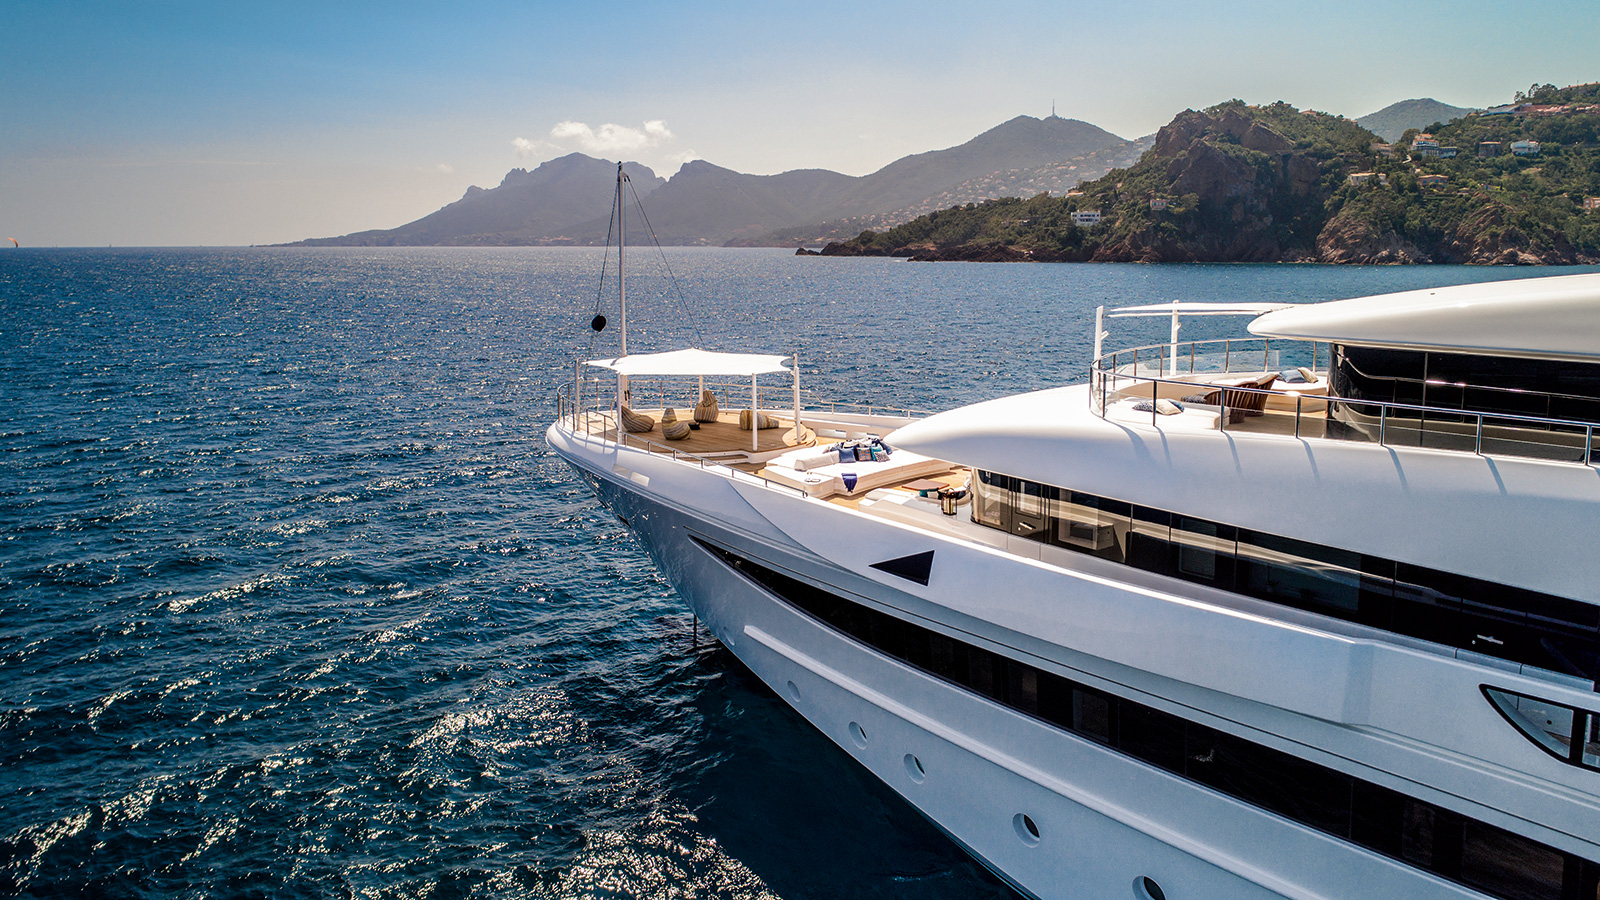 the-bow-of-the-crn-superyacht-cloud-9-credit-maurizio-paradisi